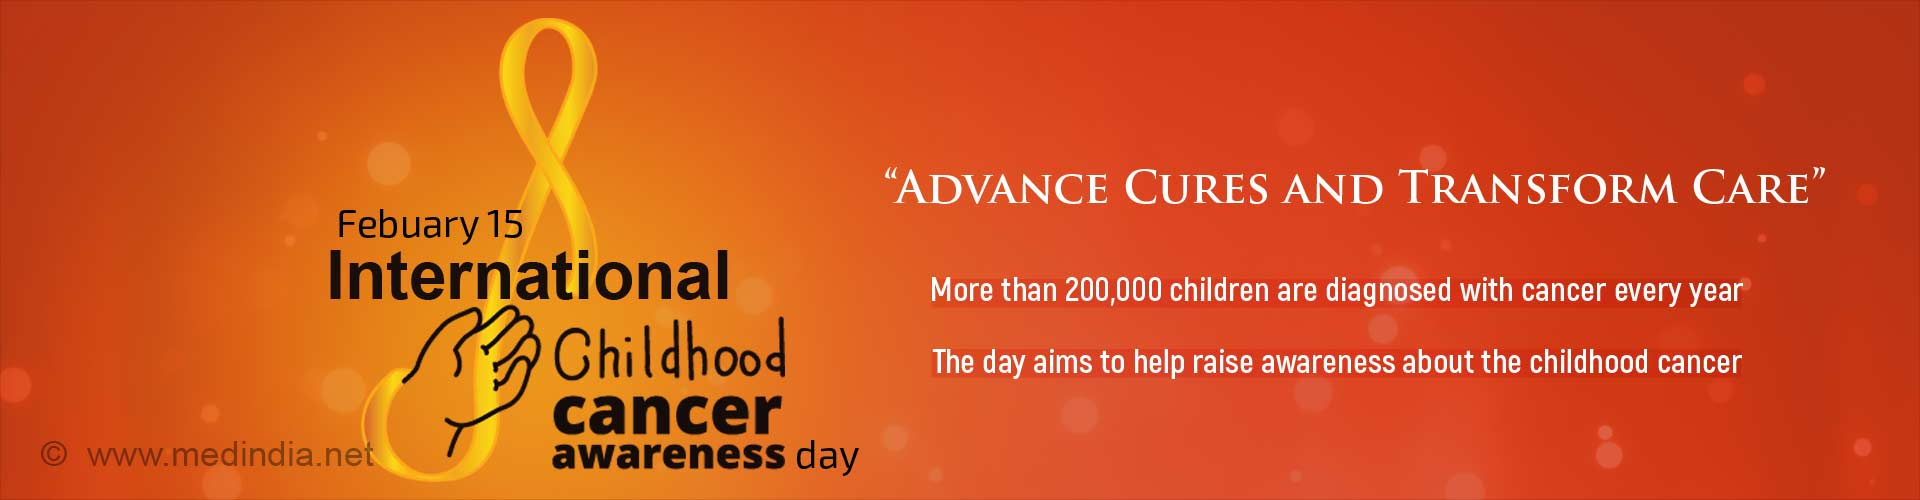 International Childhood Cancer Day: